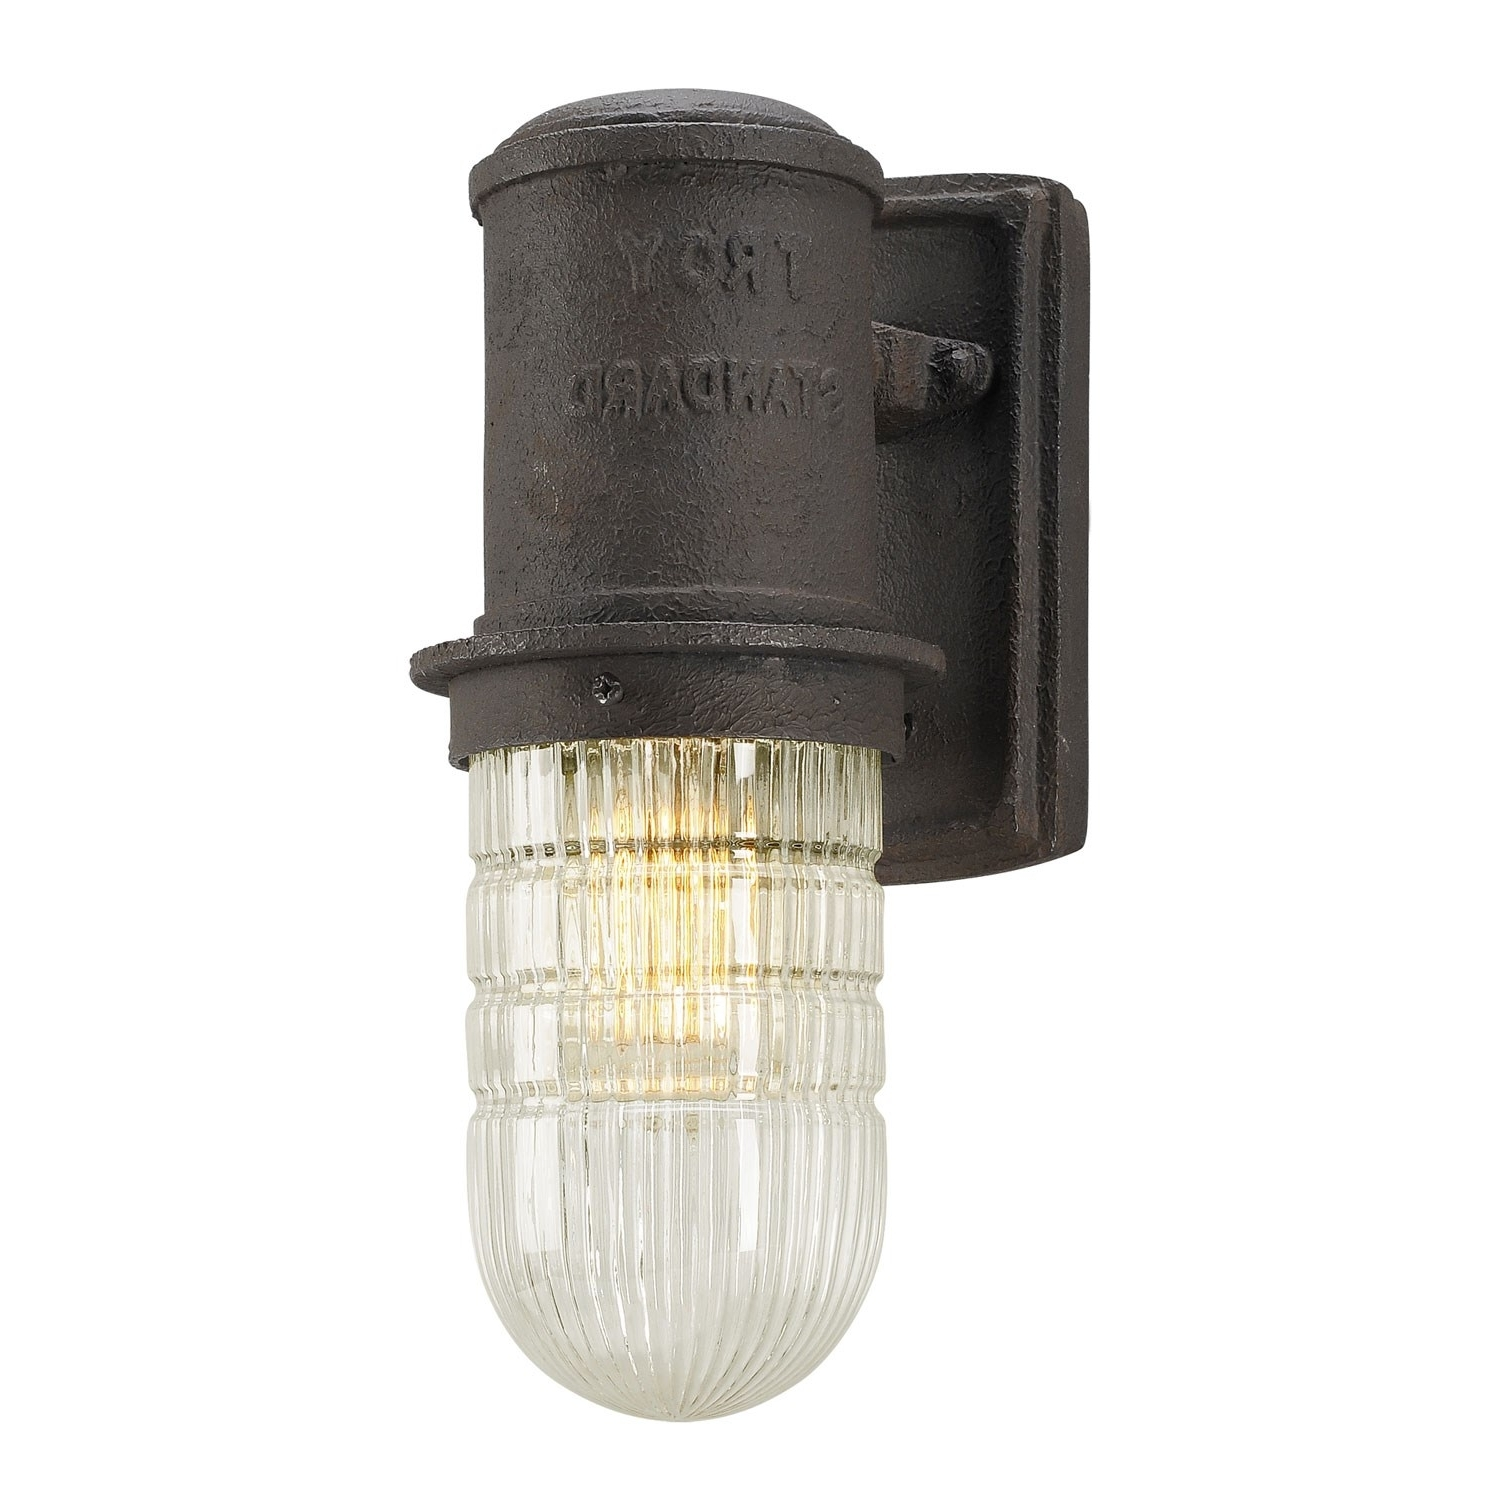 Troy Bf4341 Dock Street 4 1 2 W 1 Light Outdoor Wall Sconce In Regarding Newest Troy Lighting Outdoor Wall Sconces (View 9 of 20)